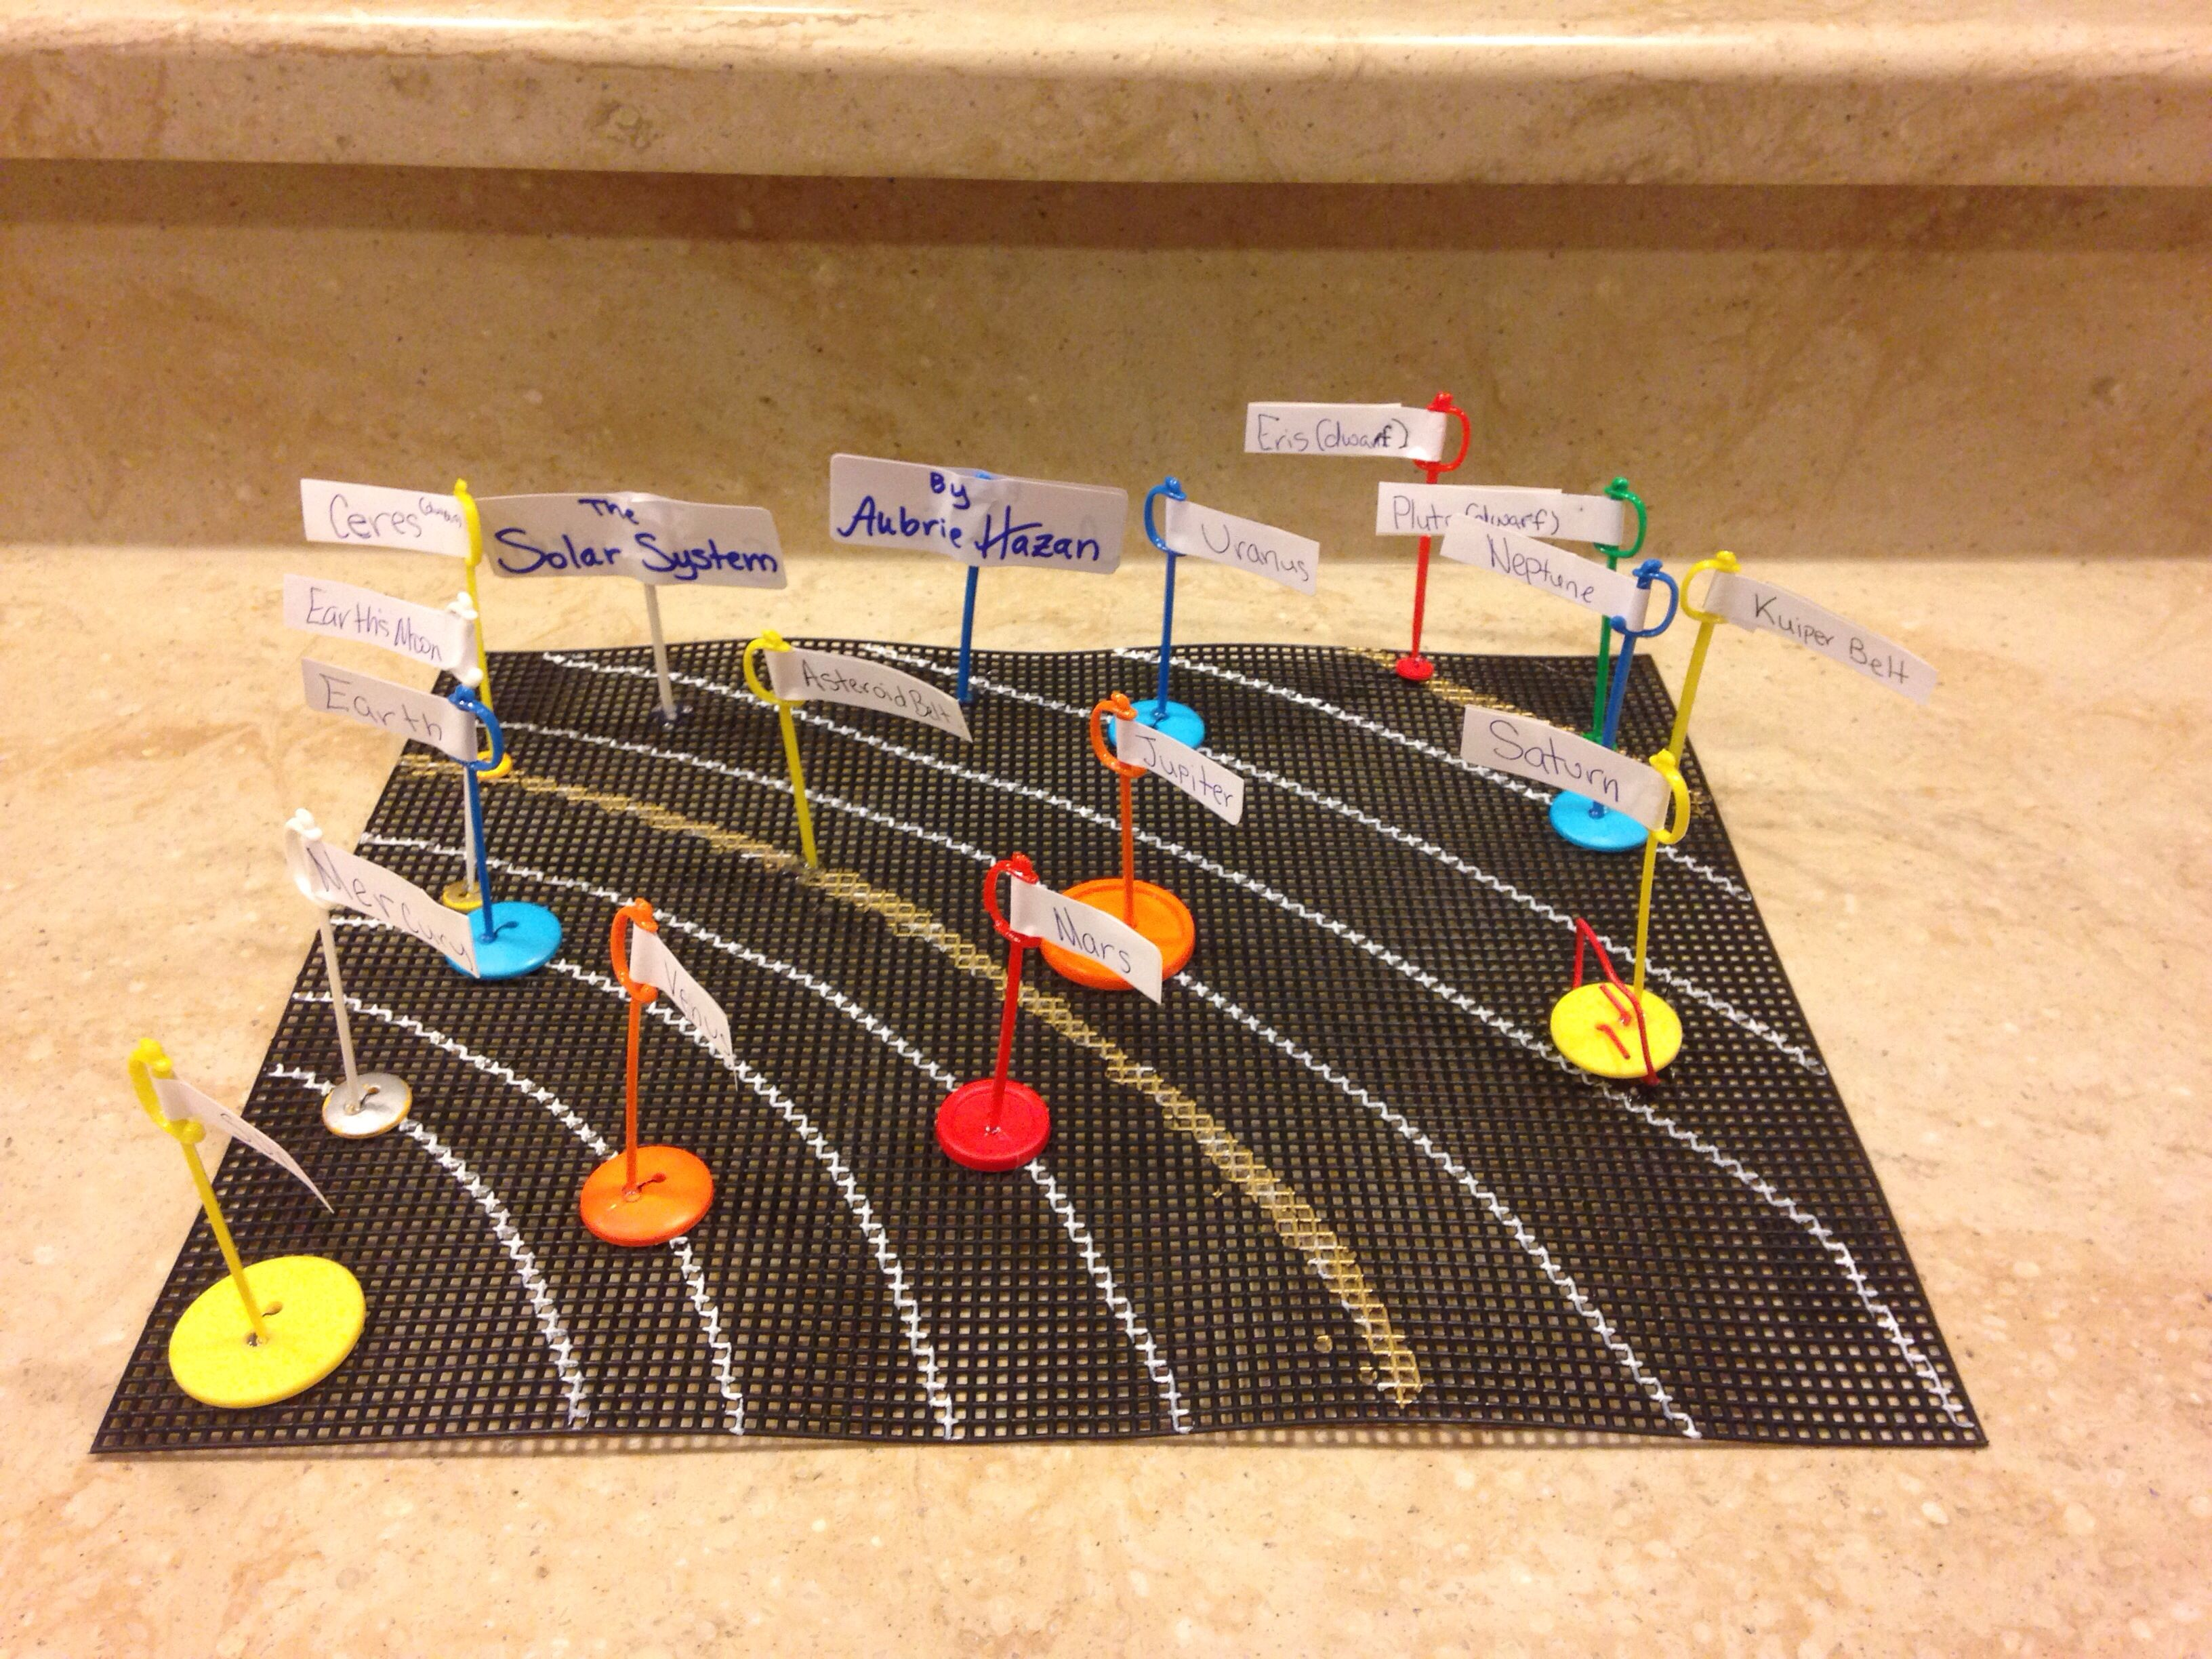 hight resolution of solar system diagram for school project made our of a plastic canvas buttons